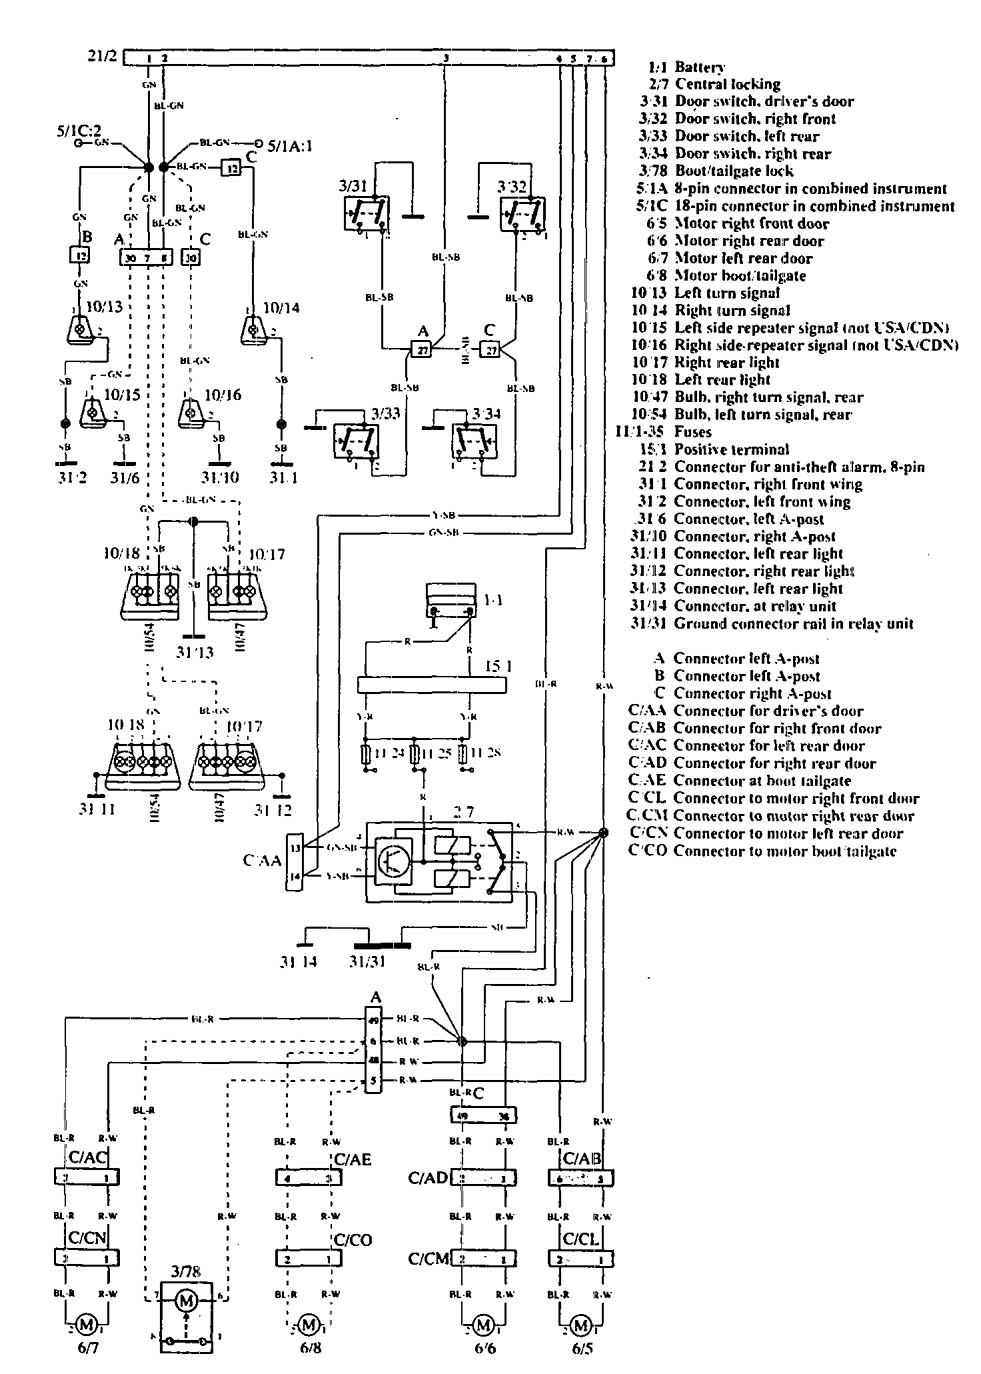 volvo s70 radio wiring diagram